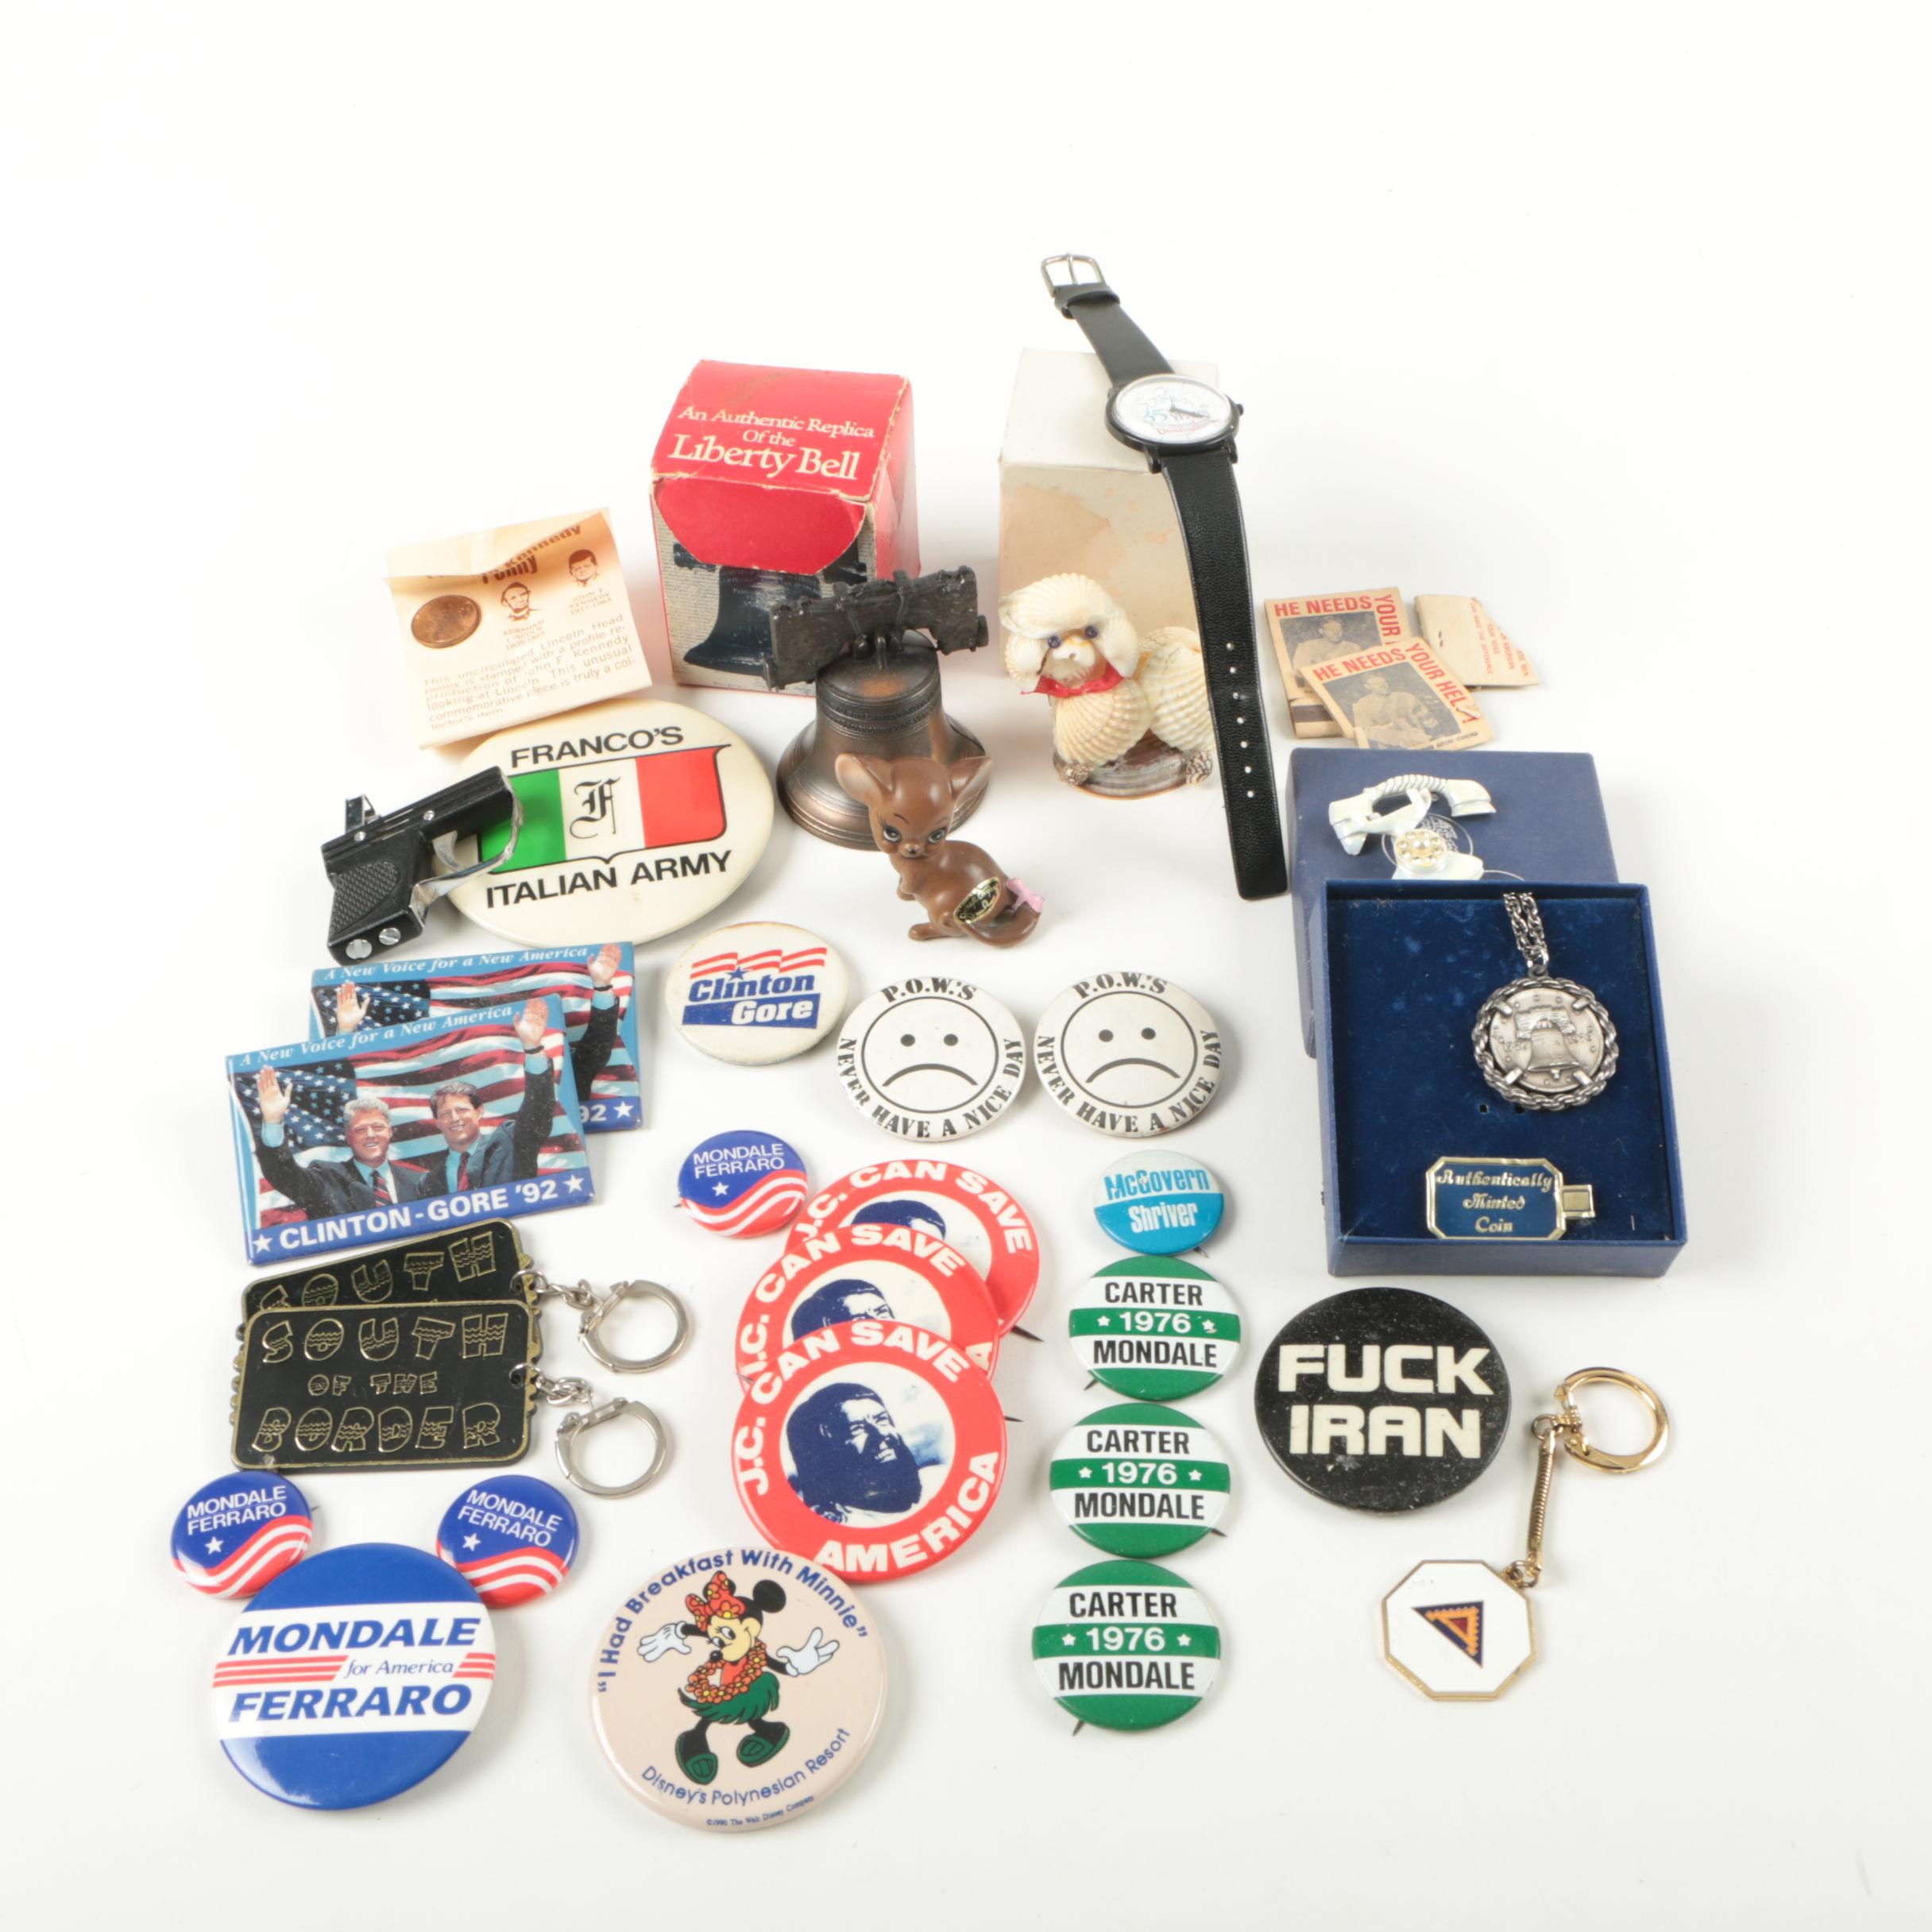 Political and Disney Memorabilia and Pistol Shaped Lighter